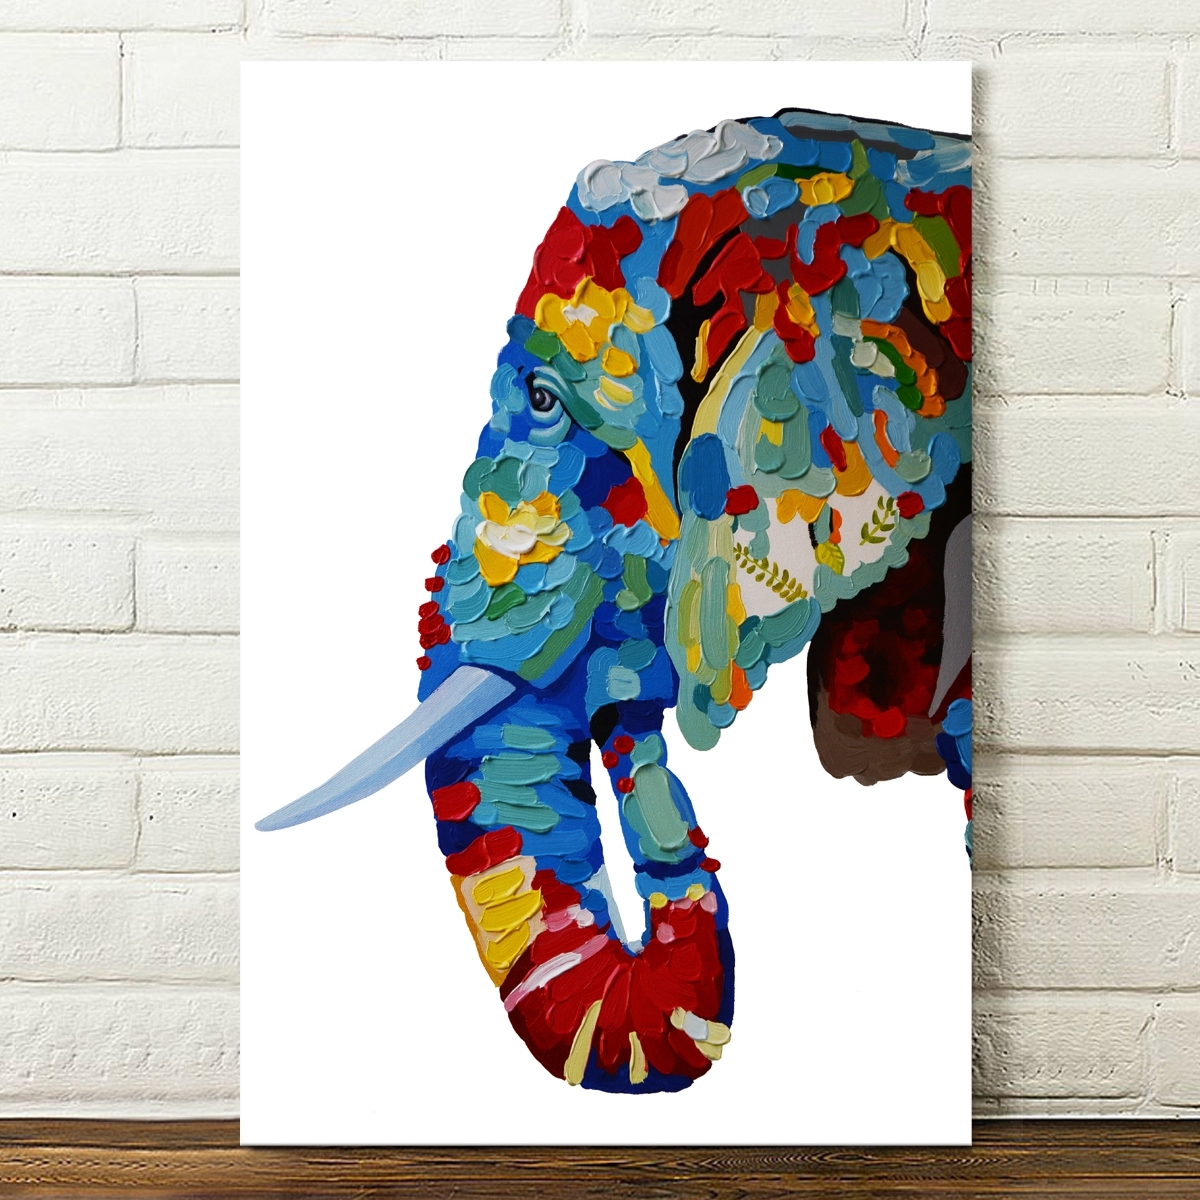 Abstract Canvas Prints Elephant Paintings Posters Home Decor Wall Within Famous Colorful Abstract Wall Art (View 5 of 15)